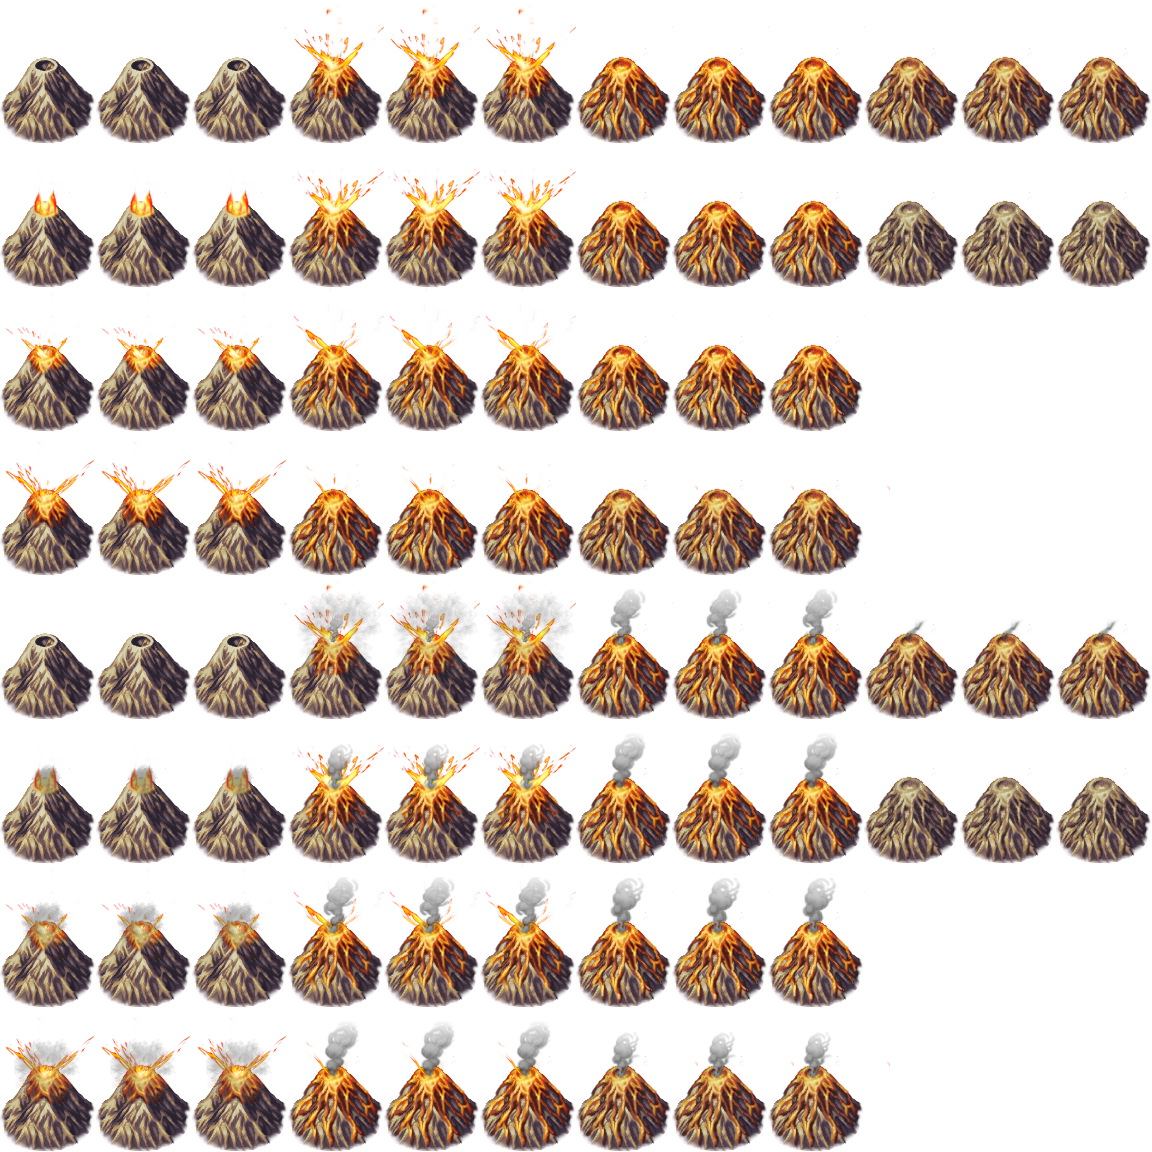 Animated Volcano - RPG TileSet Free Curated Assets for your